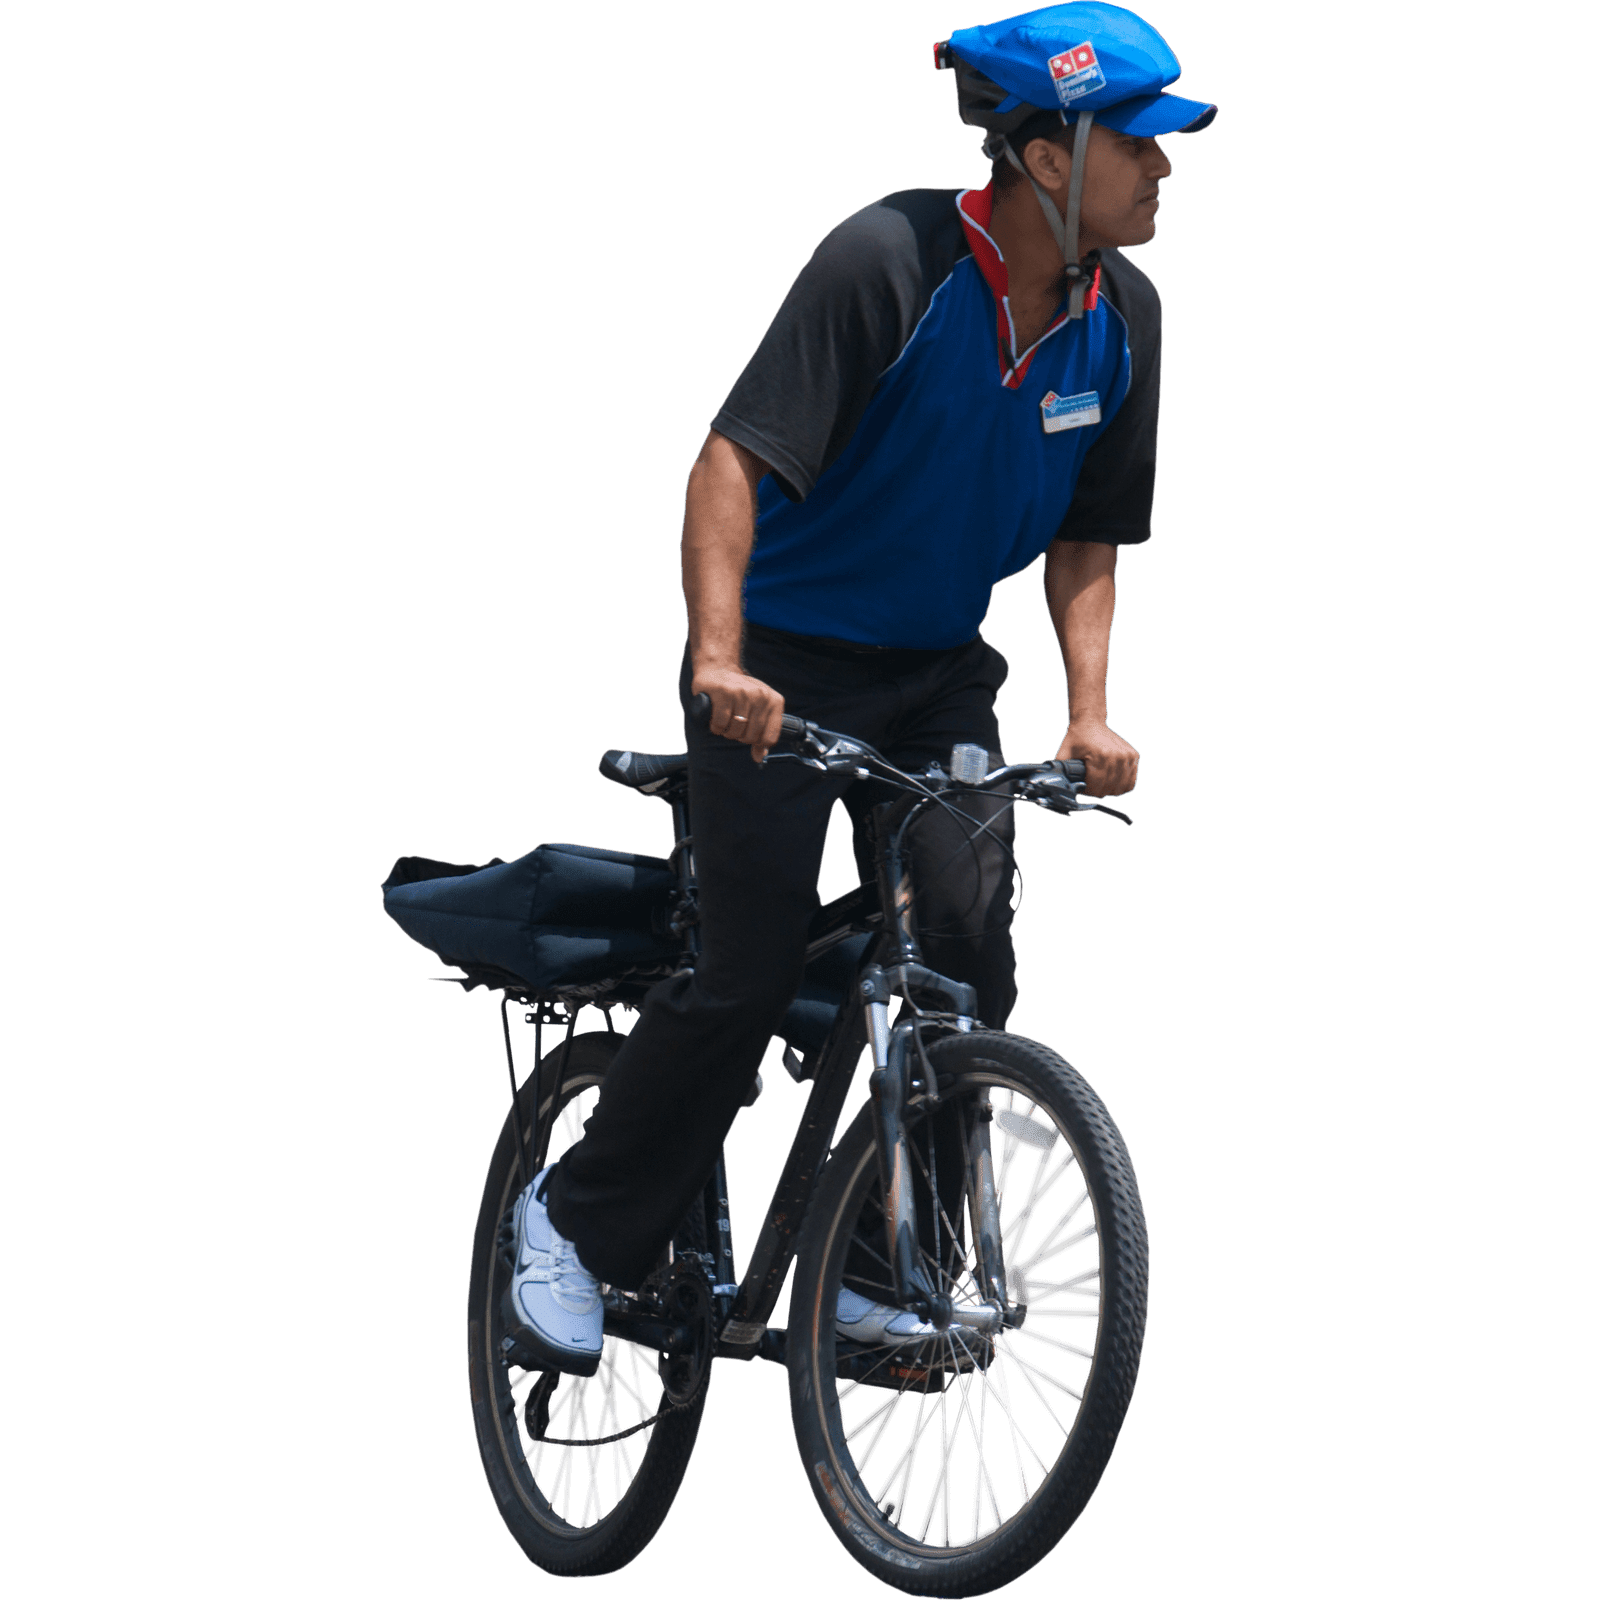 PNG Sector: Bicycle rider png.